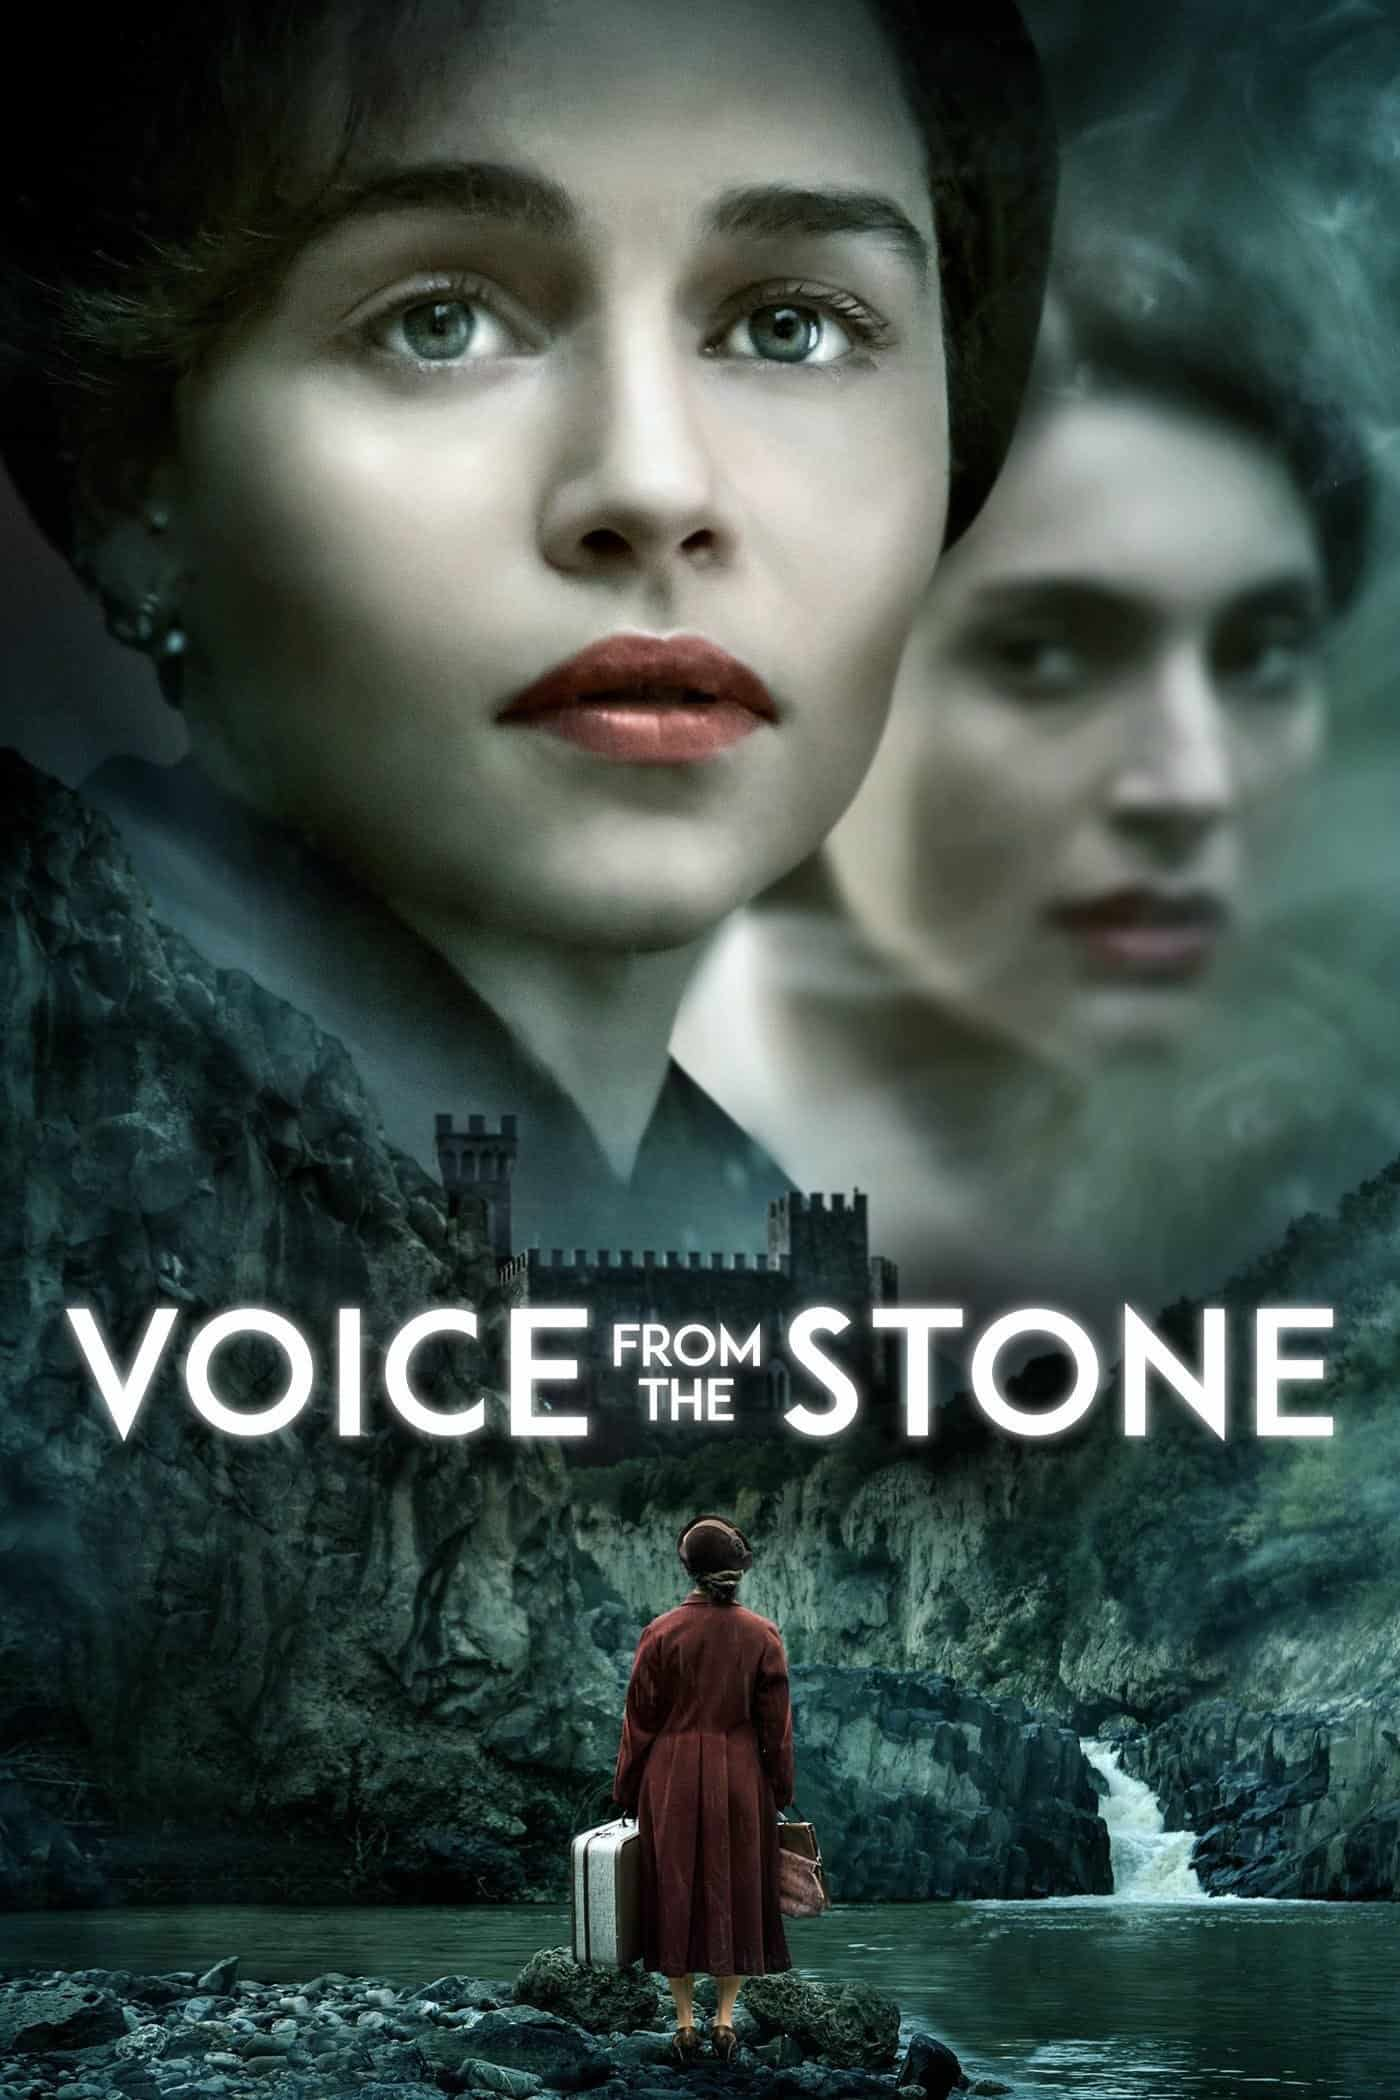 Voice from the Stone, 2017